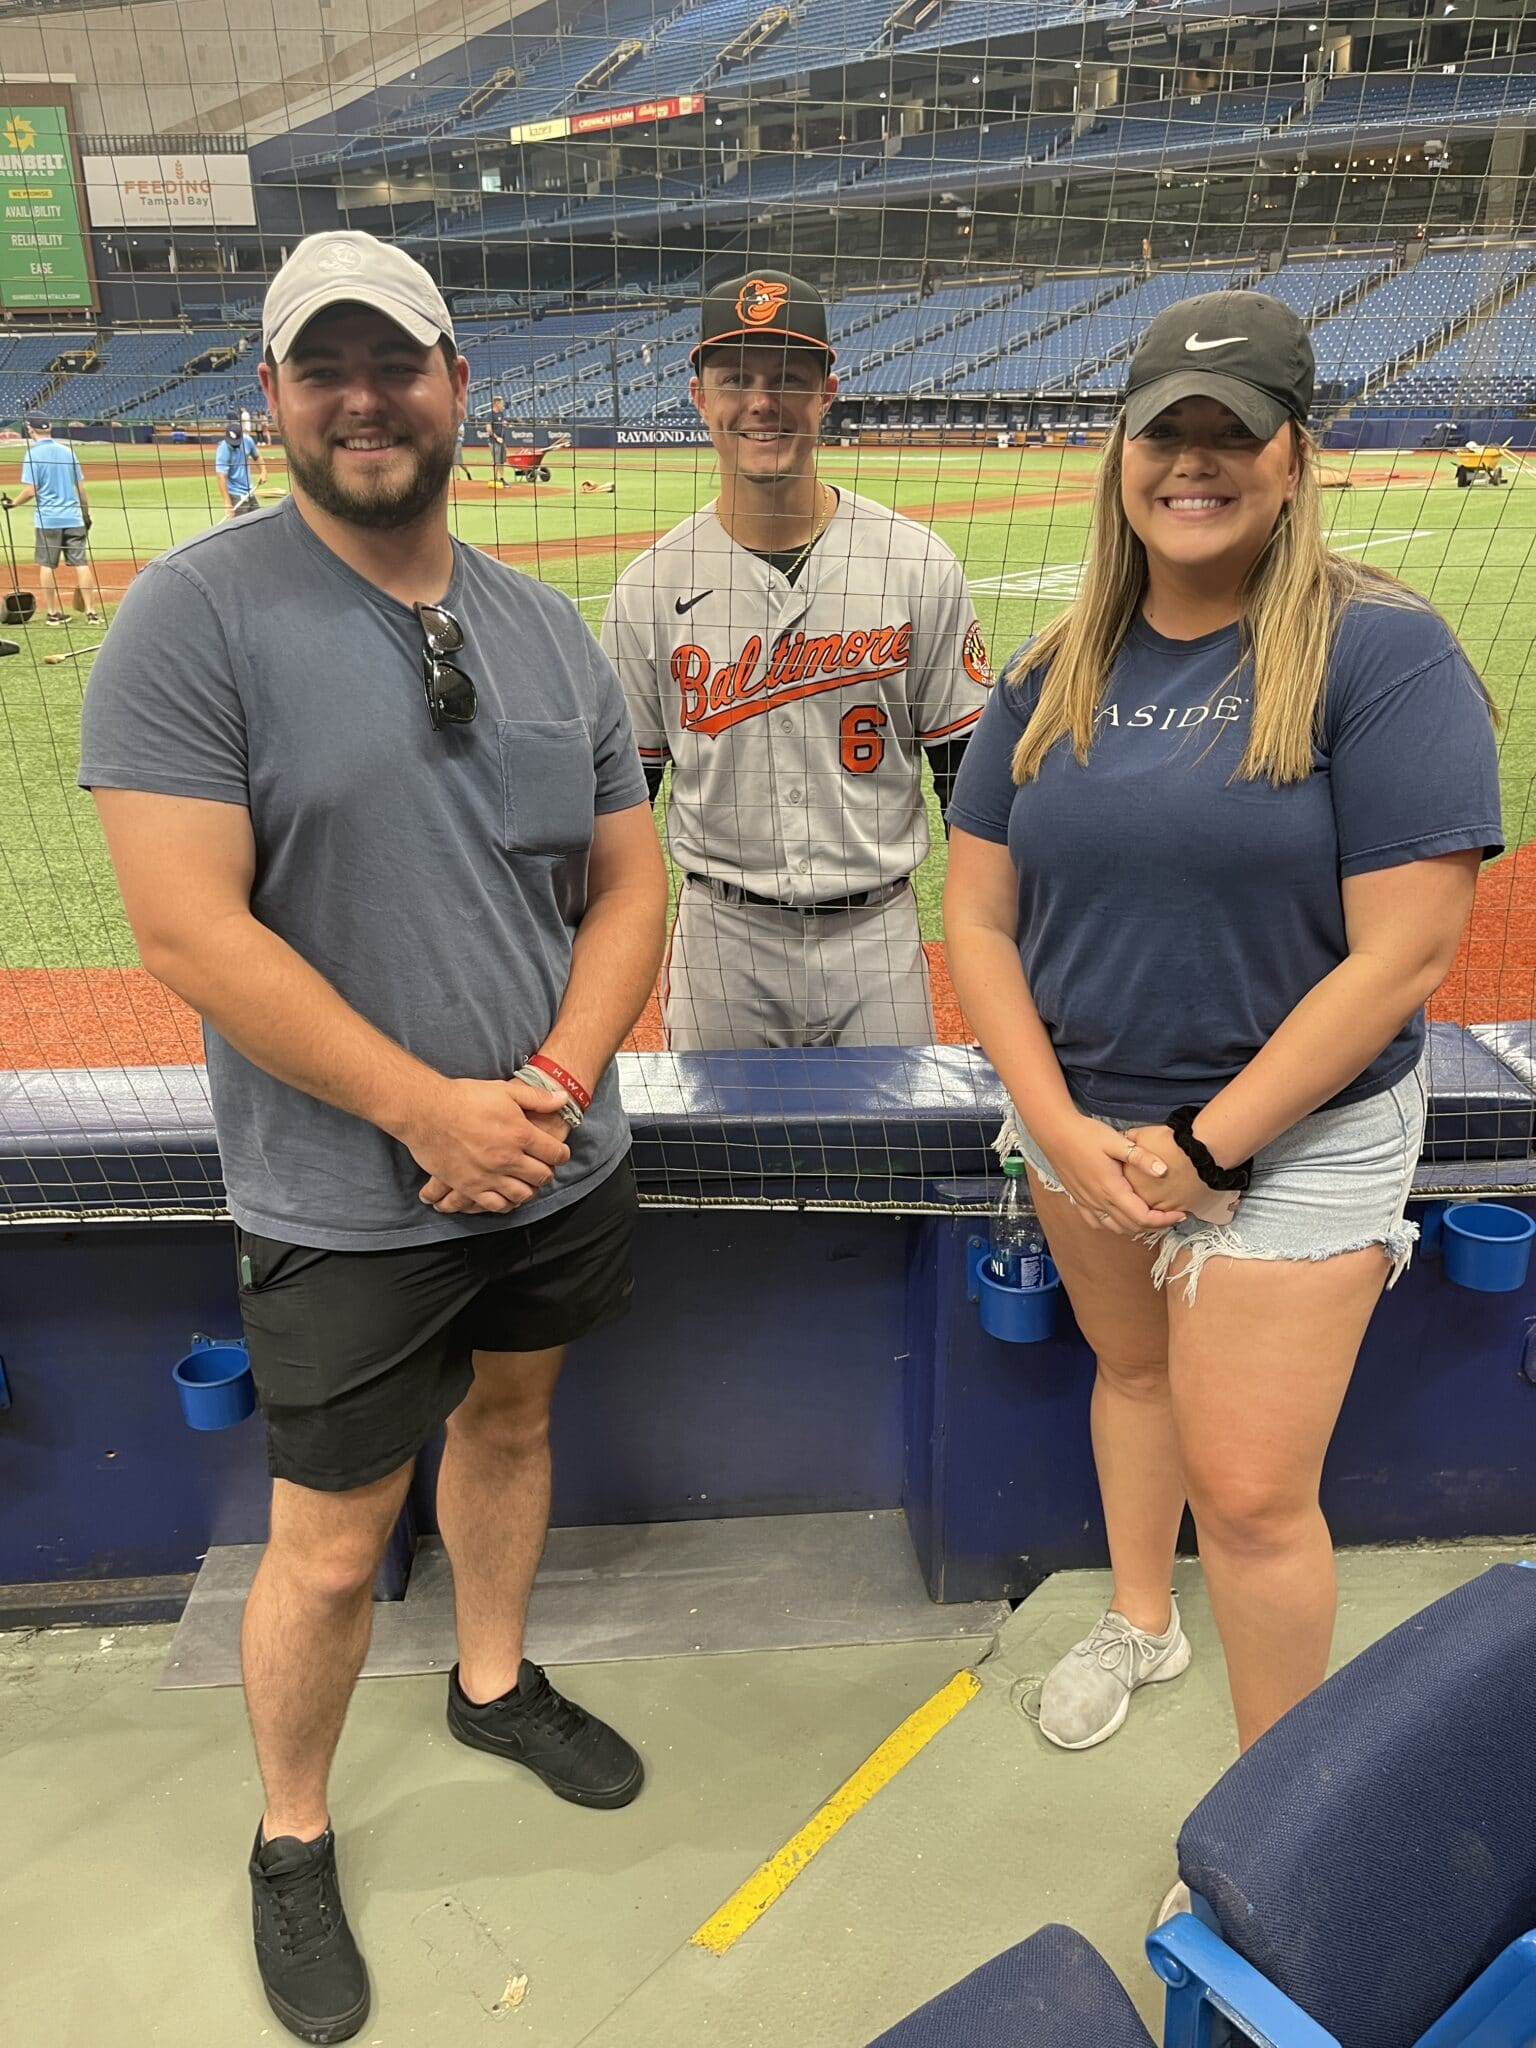 couple at a baseball game posing with one of the baseball players